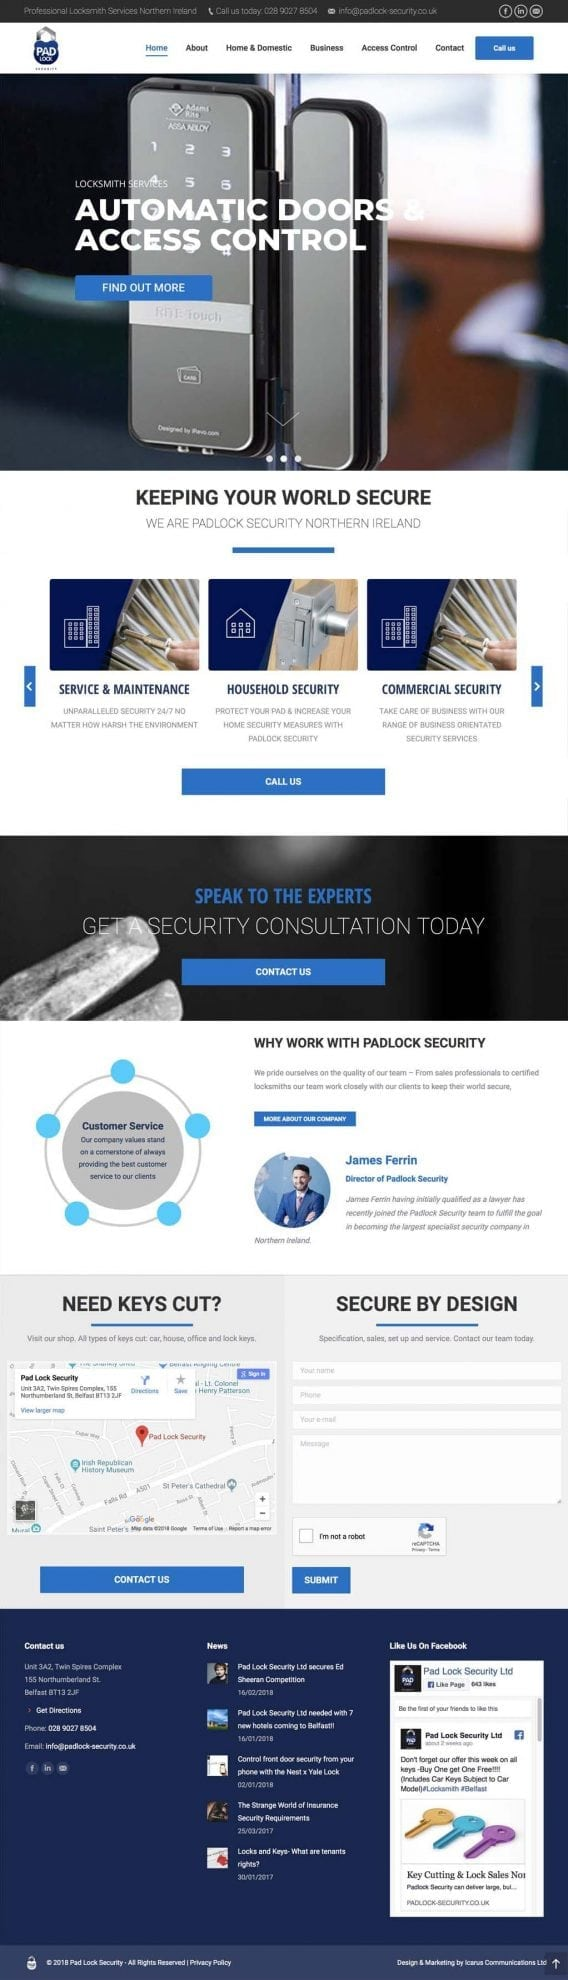 padlock security website design